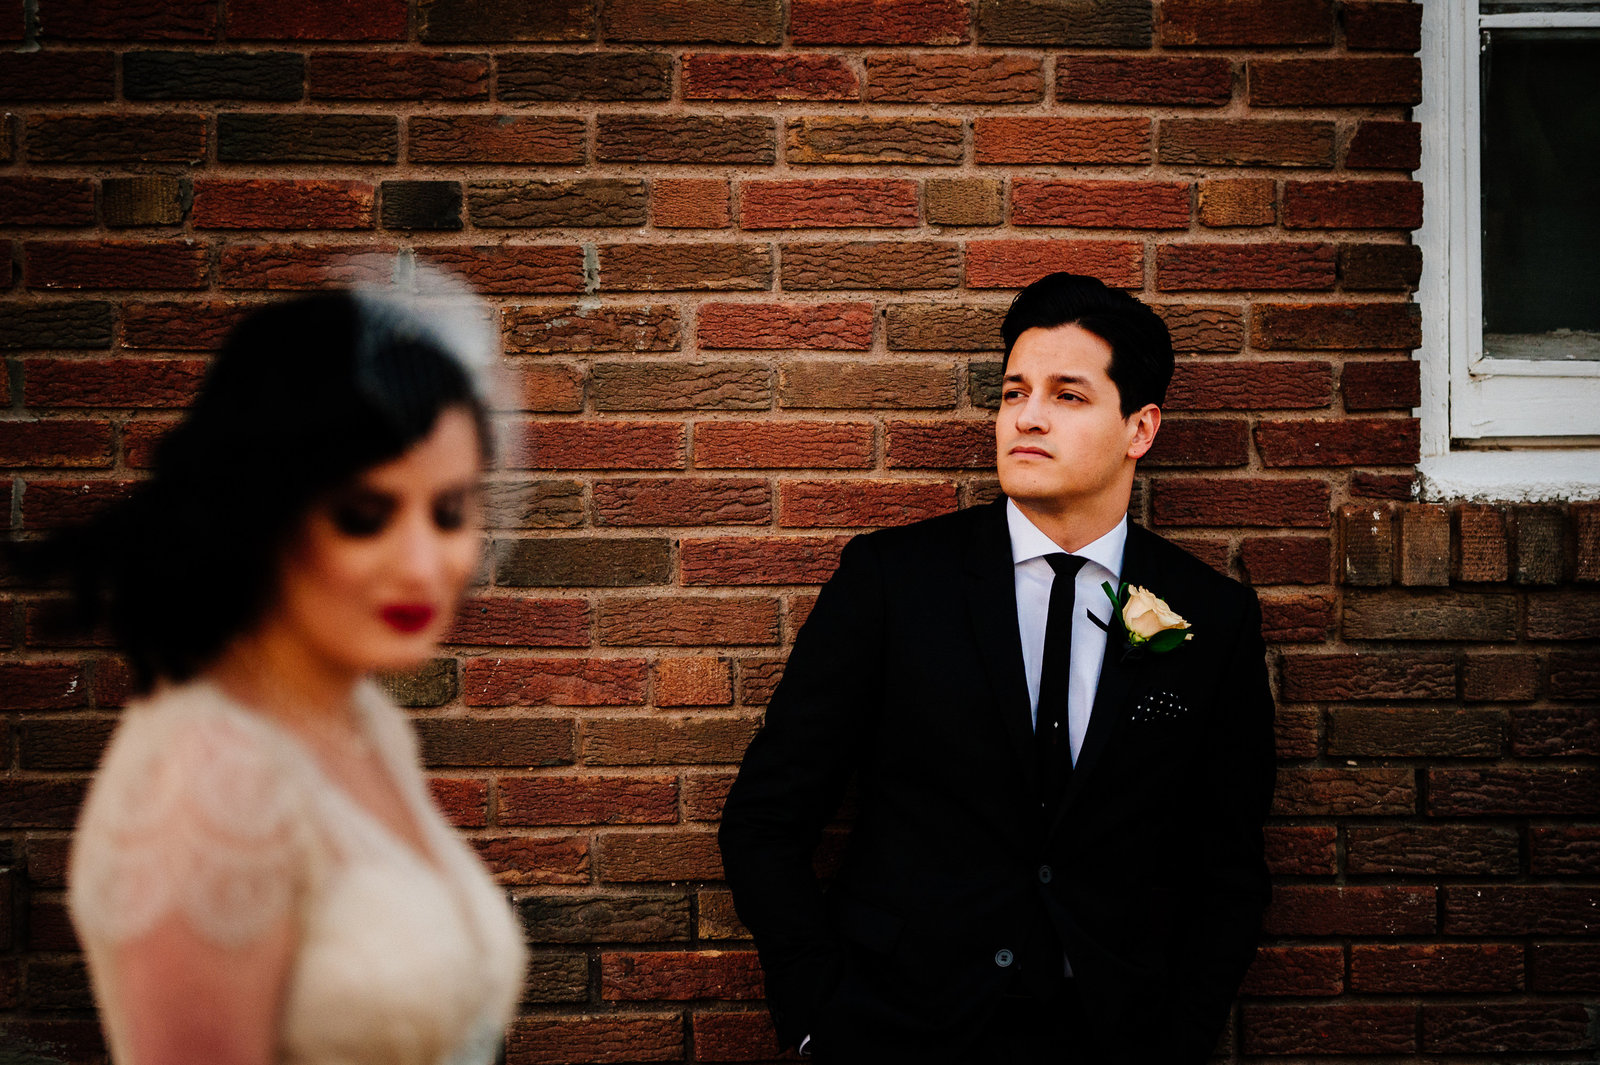 309-El-paso-wedding-photographer-AnJe_0086